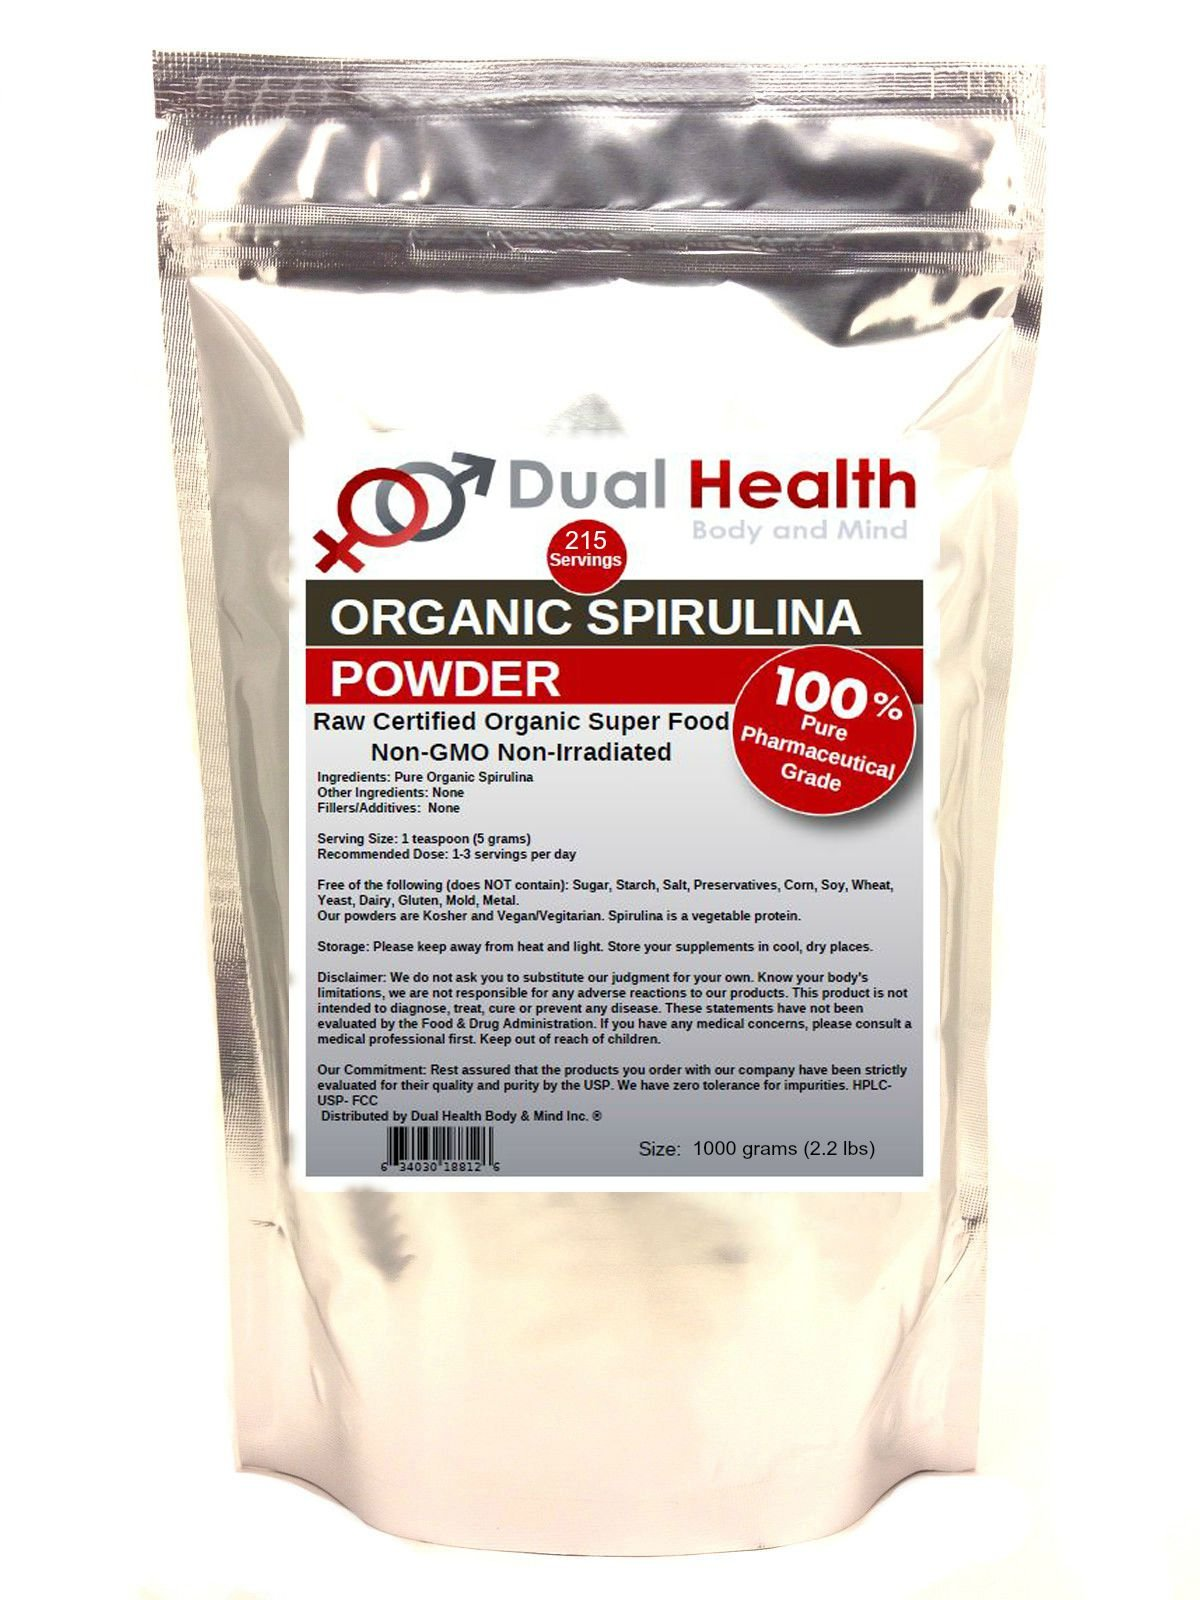 Pure Organic Spirulina (1kilogram (2.2 lbs)) Protein Powder USDA Chlorophyll Non-GMO Non-Irradiated Bulk Supplements